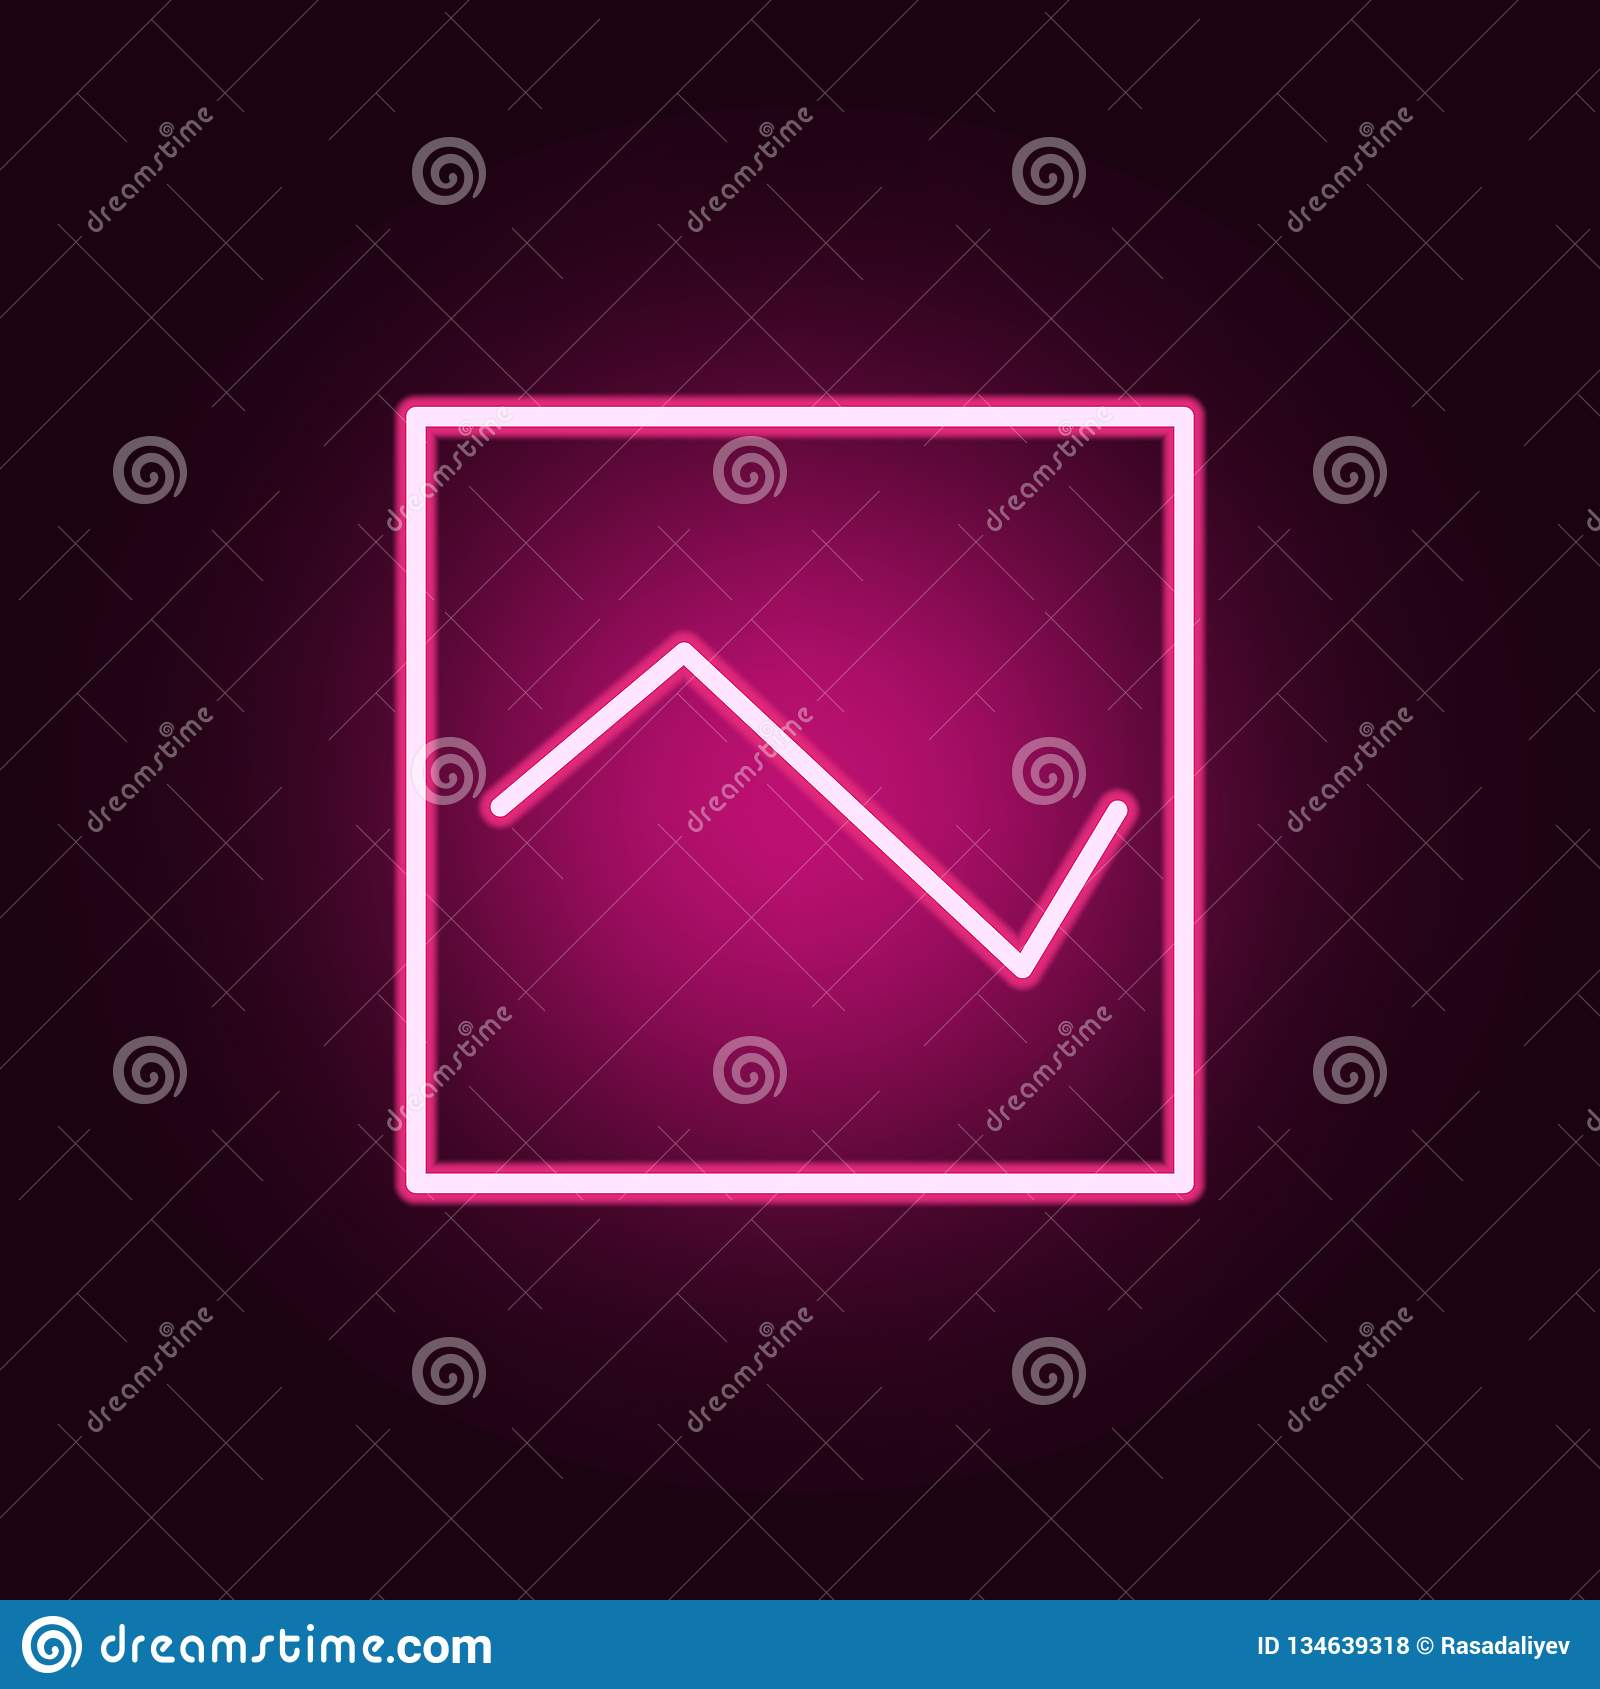 diagram icon. Elements of web in neon style icons. Simple icon for websites, web design, mobile app, info graphics